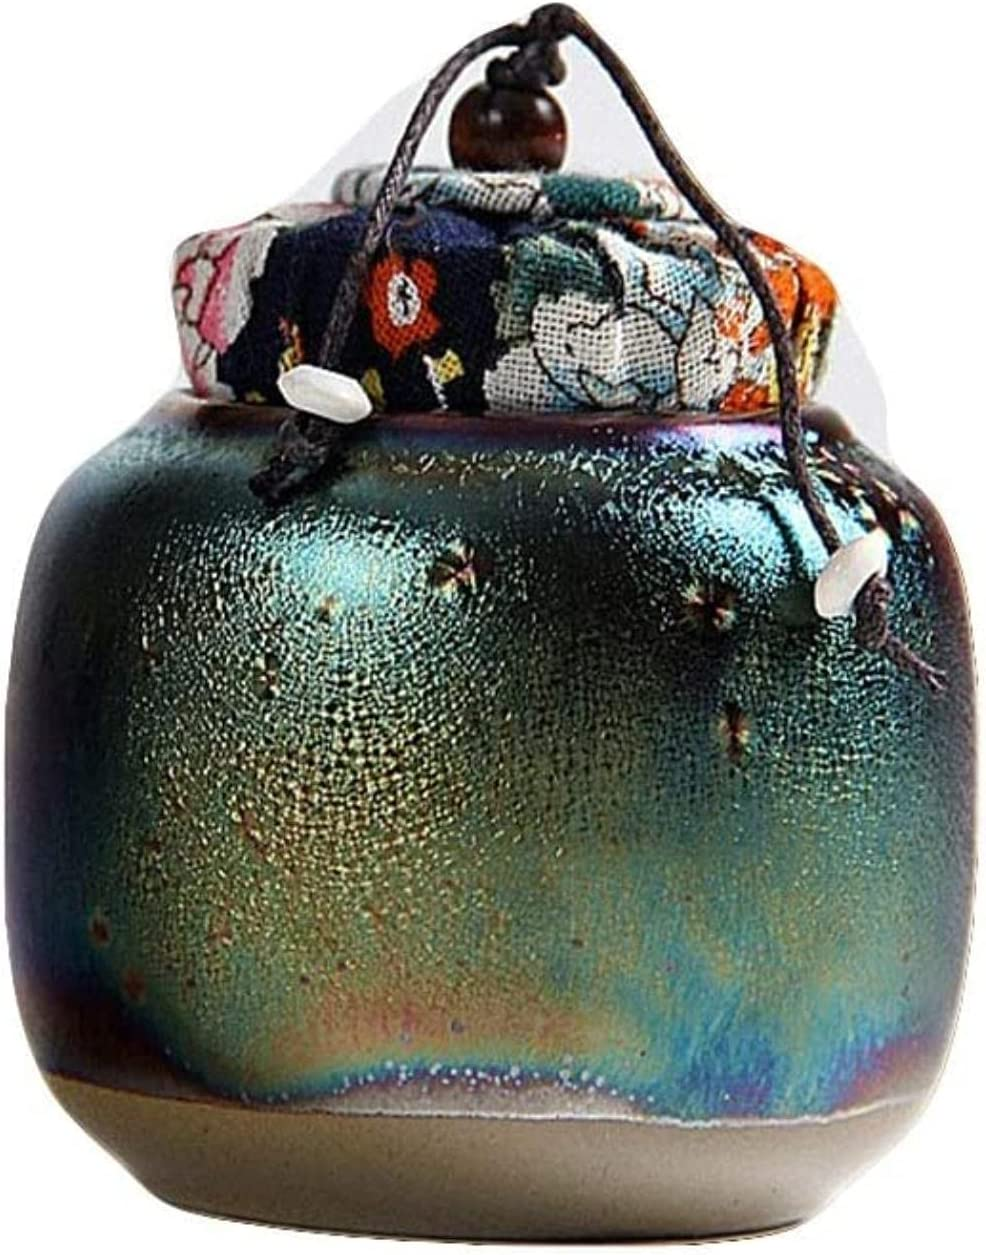 Xkun urn Jacksonville Mall Tea 7.6x8.8cm Sales of SALE items from new works can